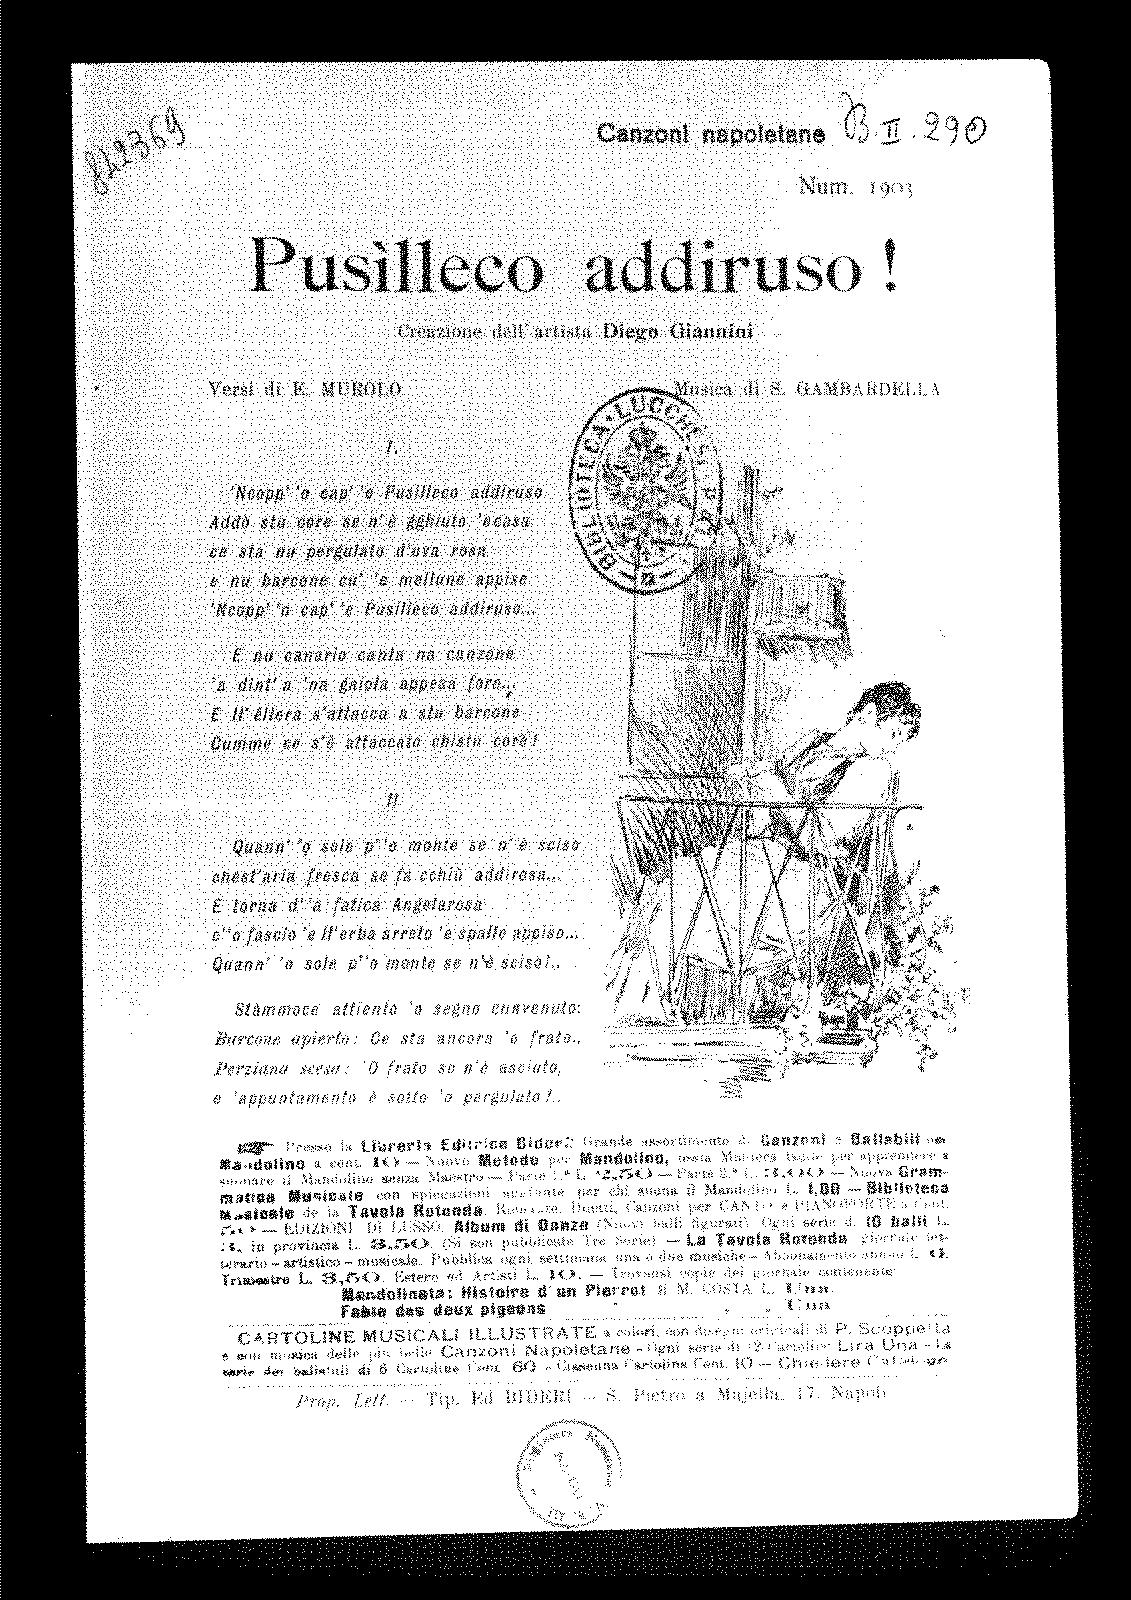 PMLP705071-Pusilleco addiruso.pdf